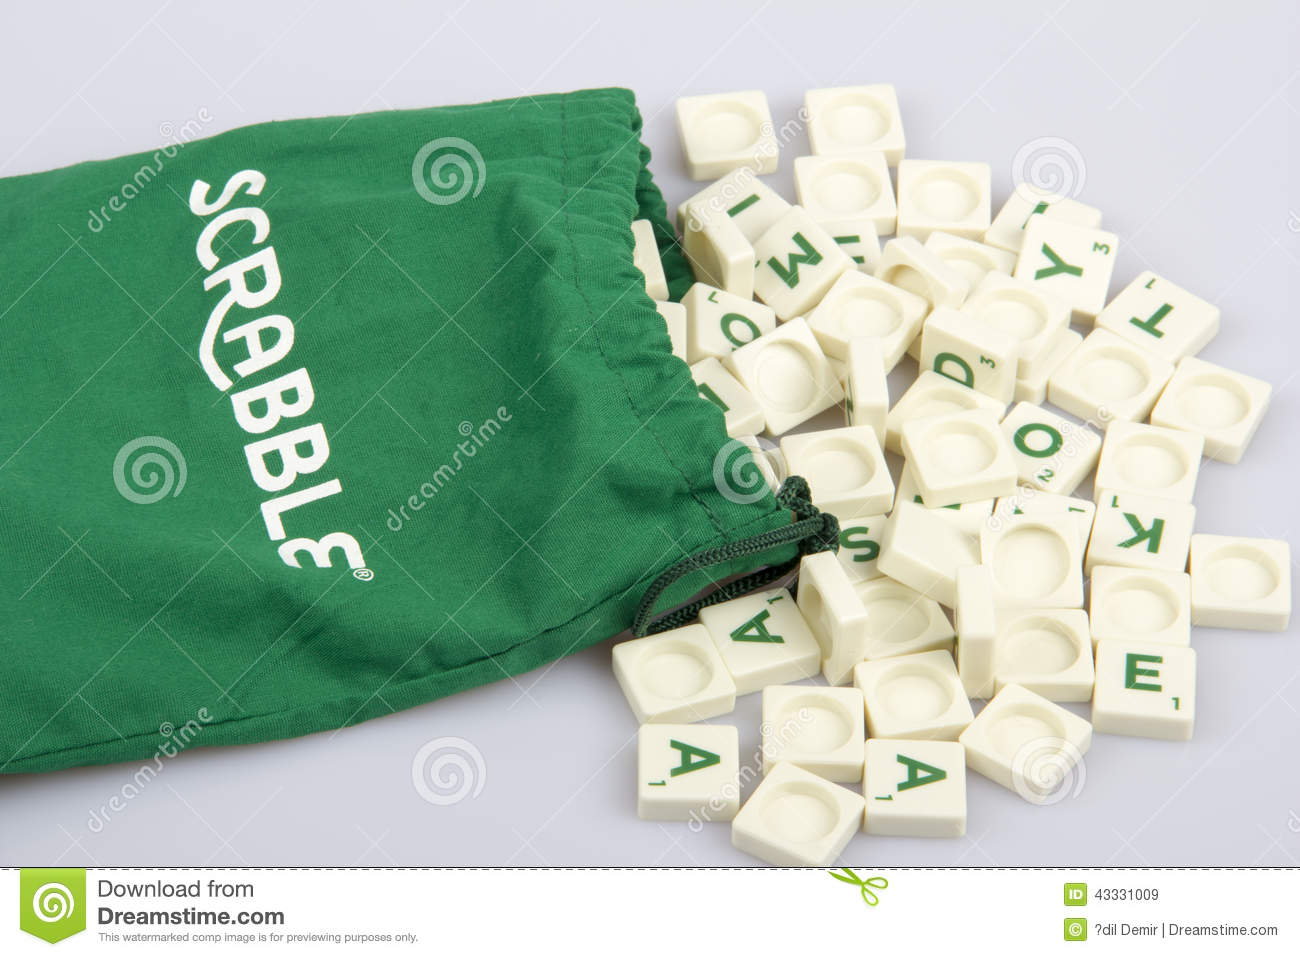 scrabble letter tiles editorial stock image image of scrabble